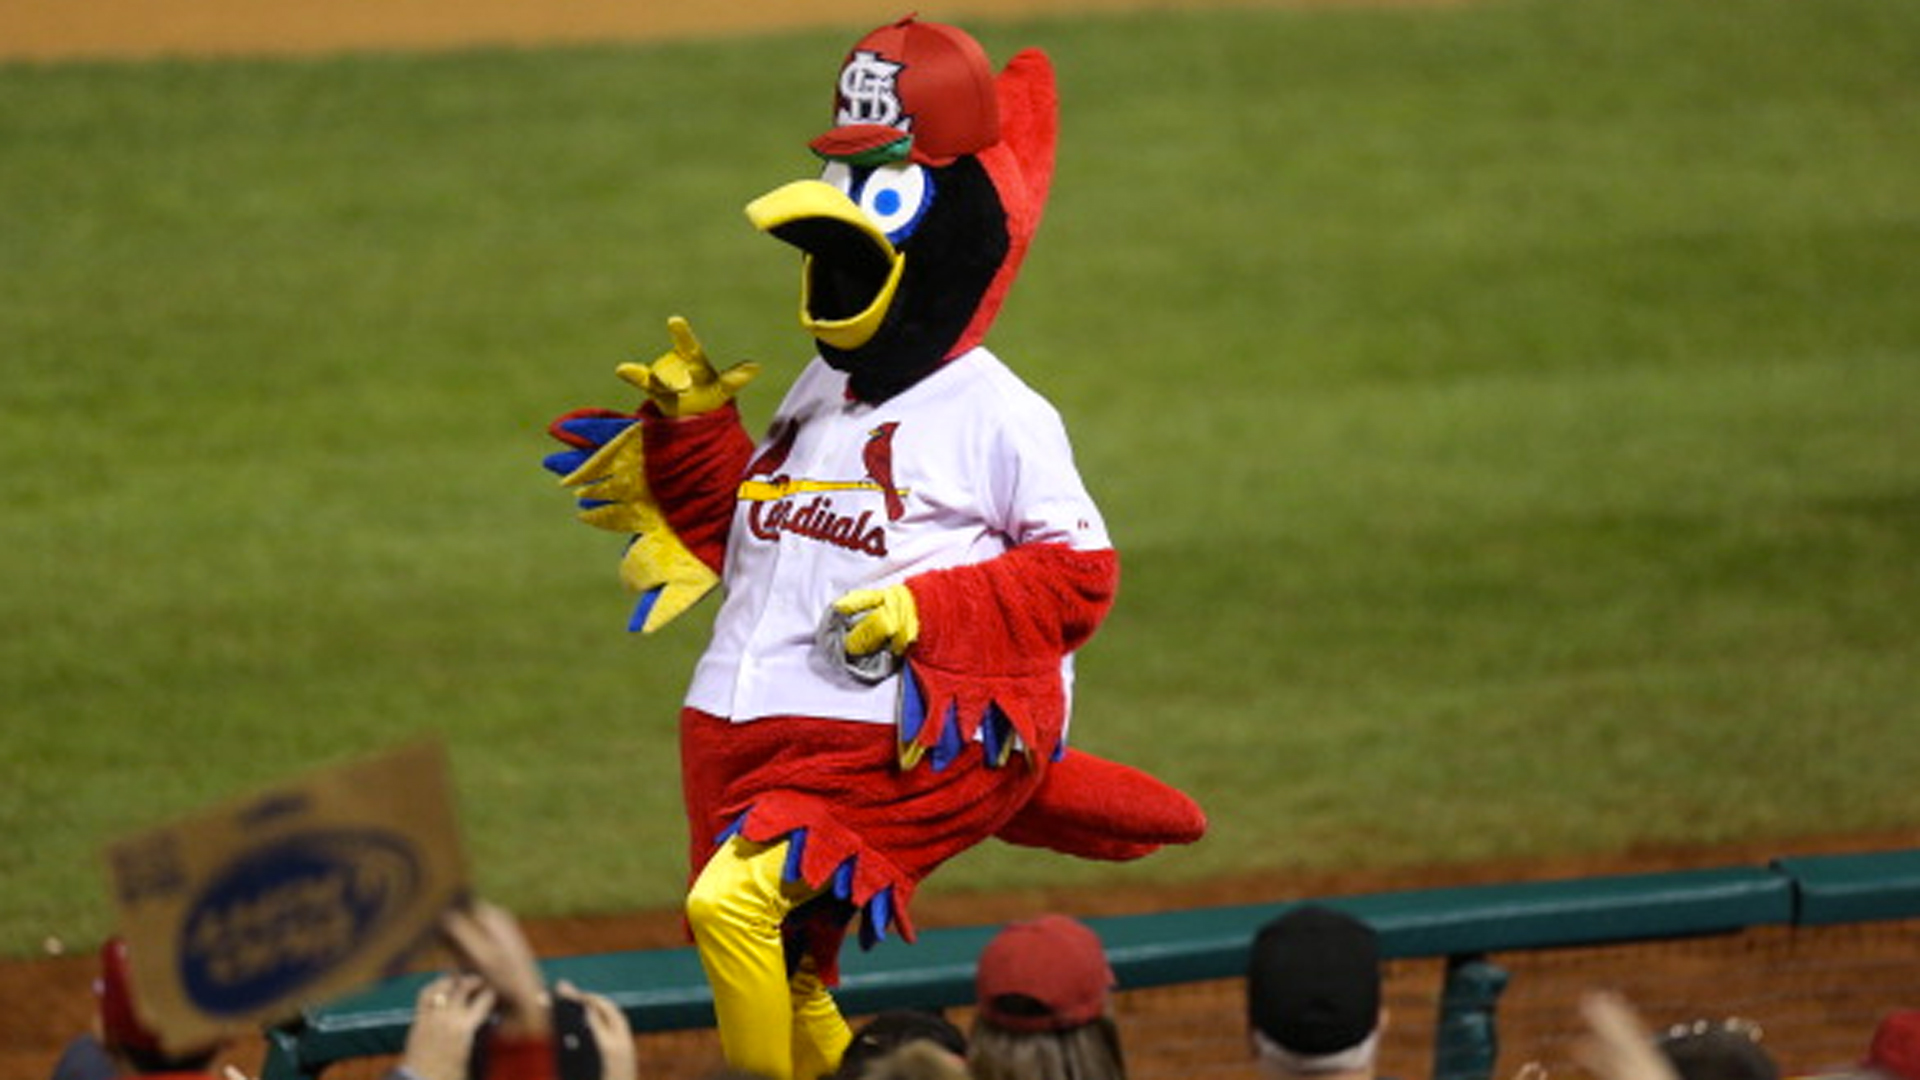 Cardinals 'Fredbird' mascot scrutinized for controversial photo